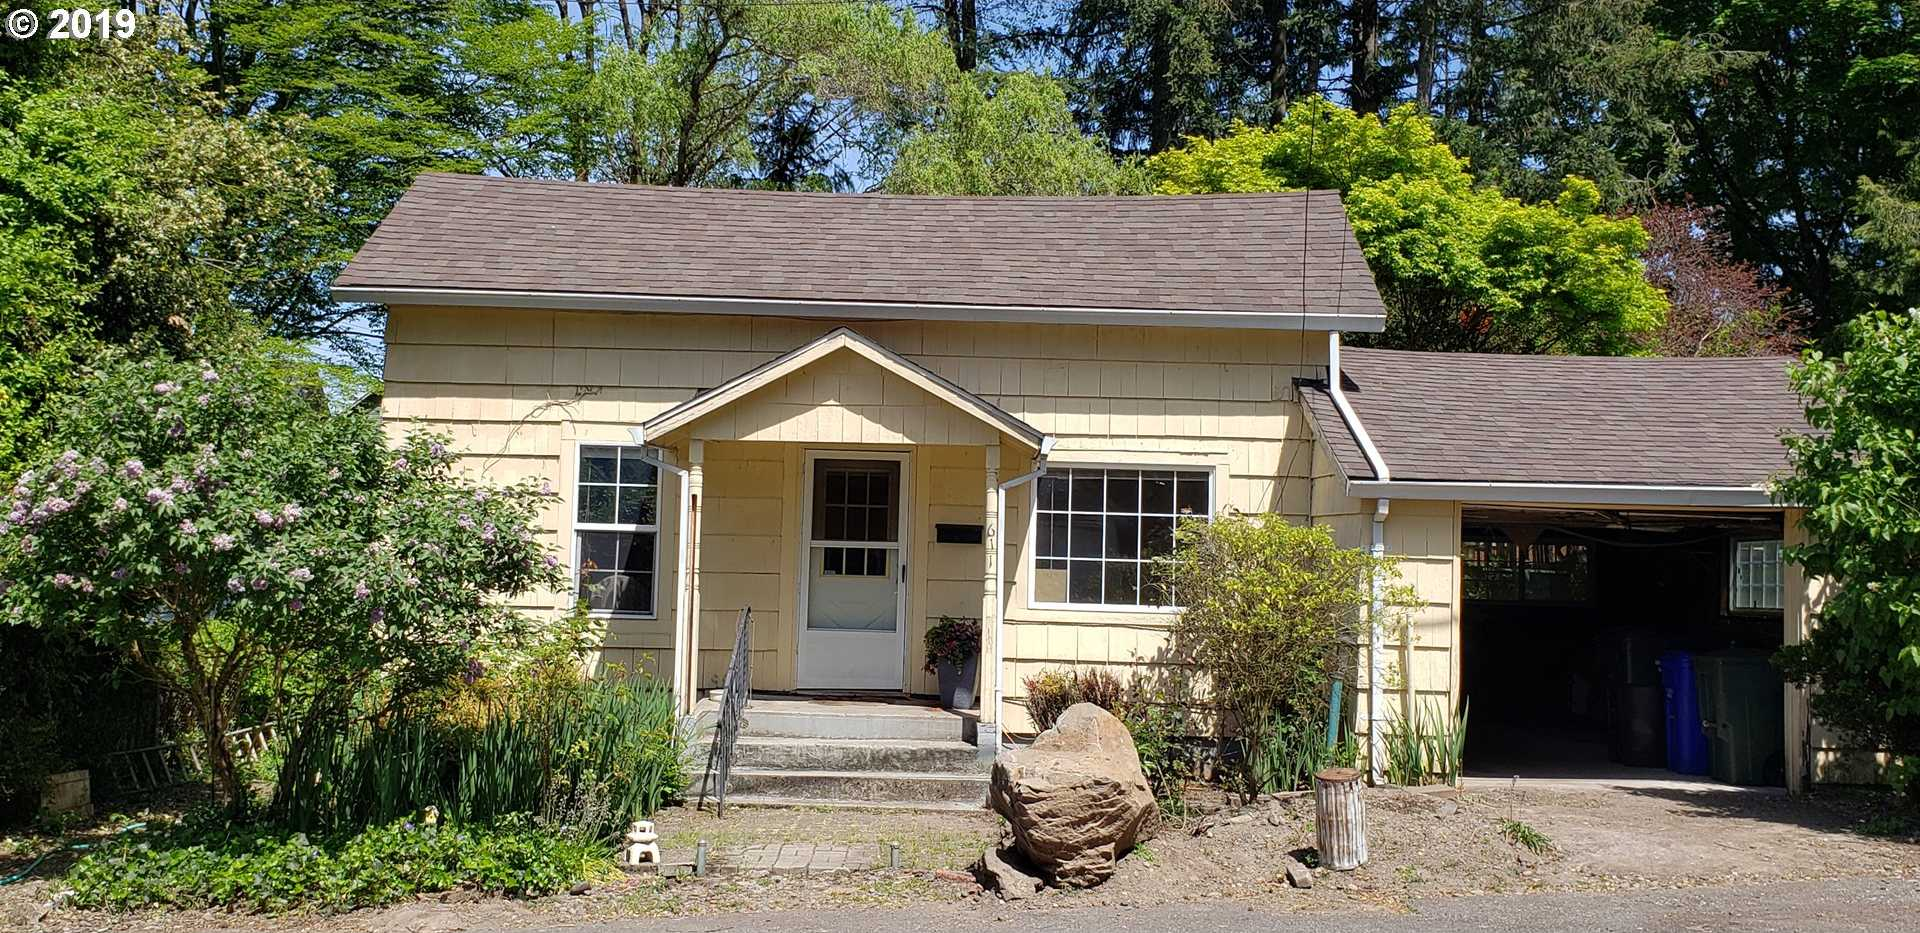 $239,000 - 3Br/1Ba -  for Sale in Oregon City